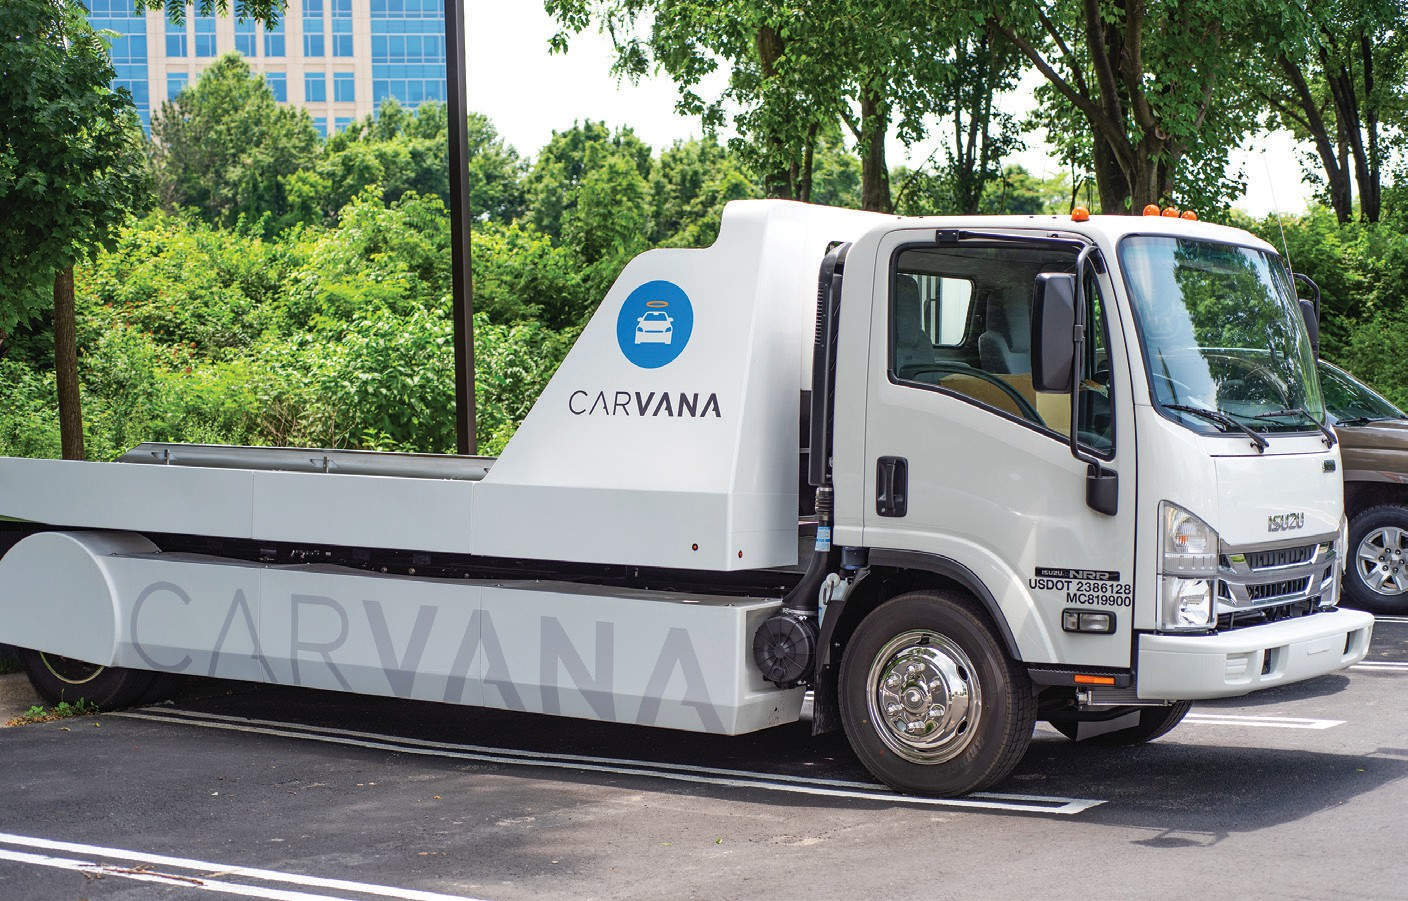 Before construction, Carvana to give historians access to